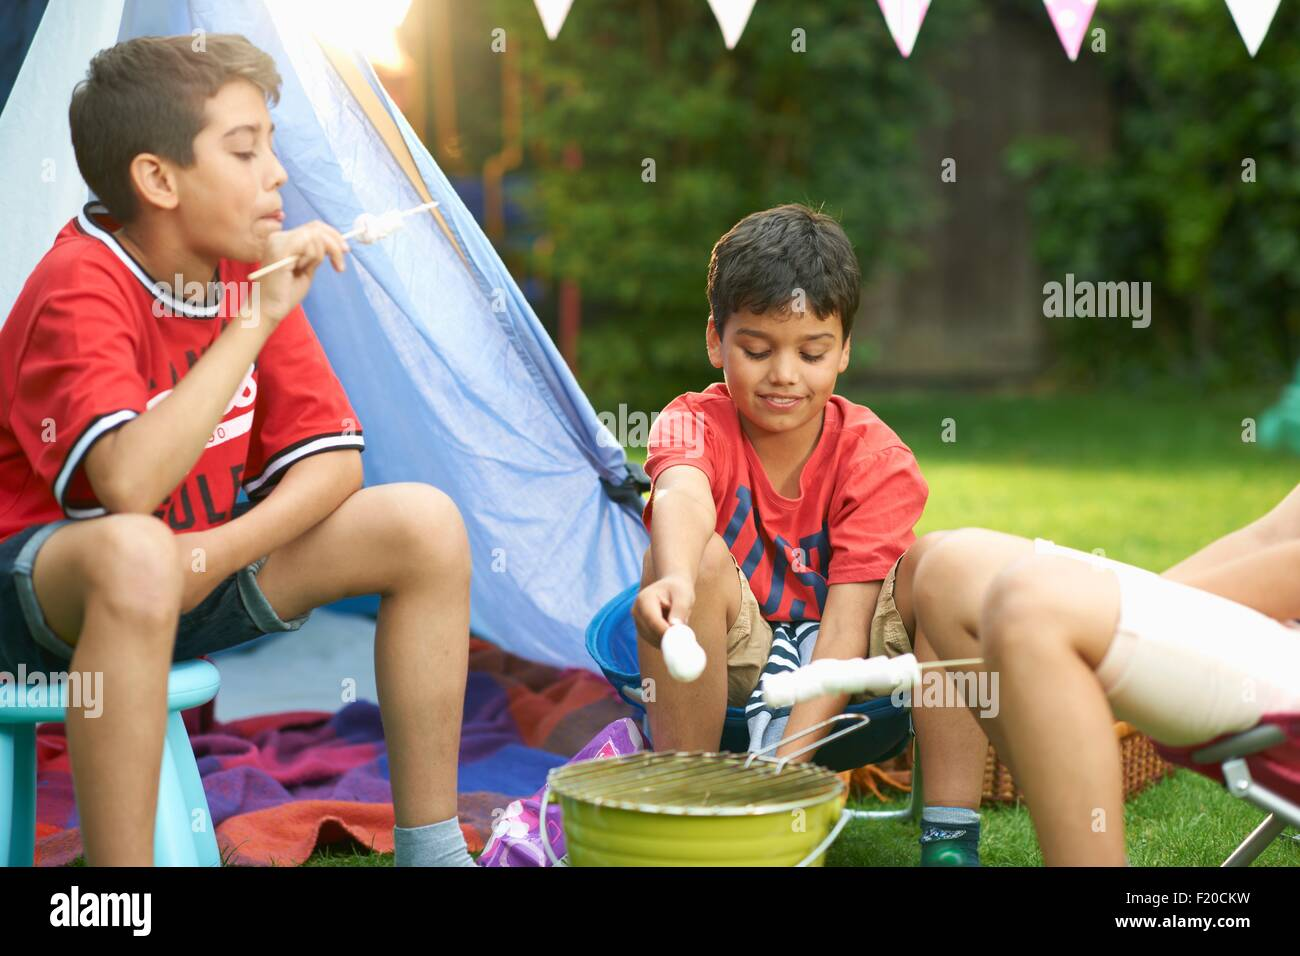 Girl and brothers toasting marshmallows in front of homemade tent in garden - Stock Image